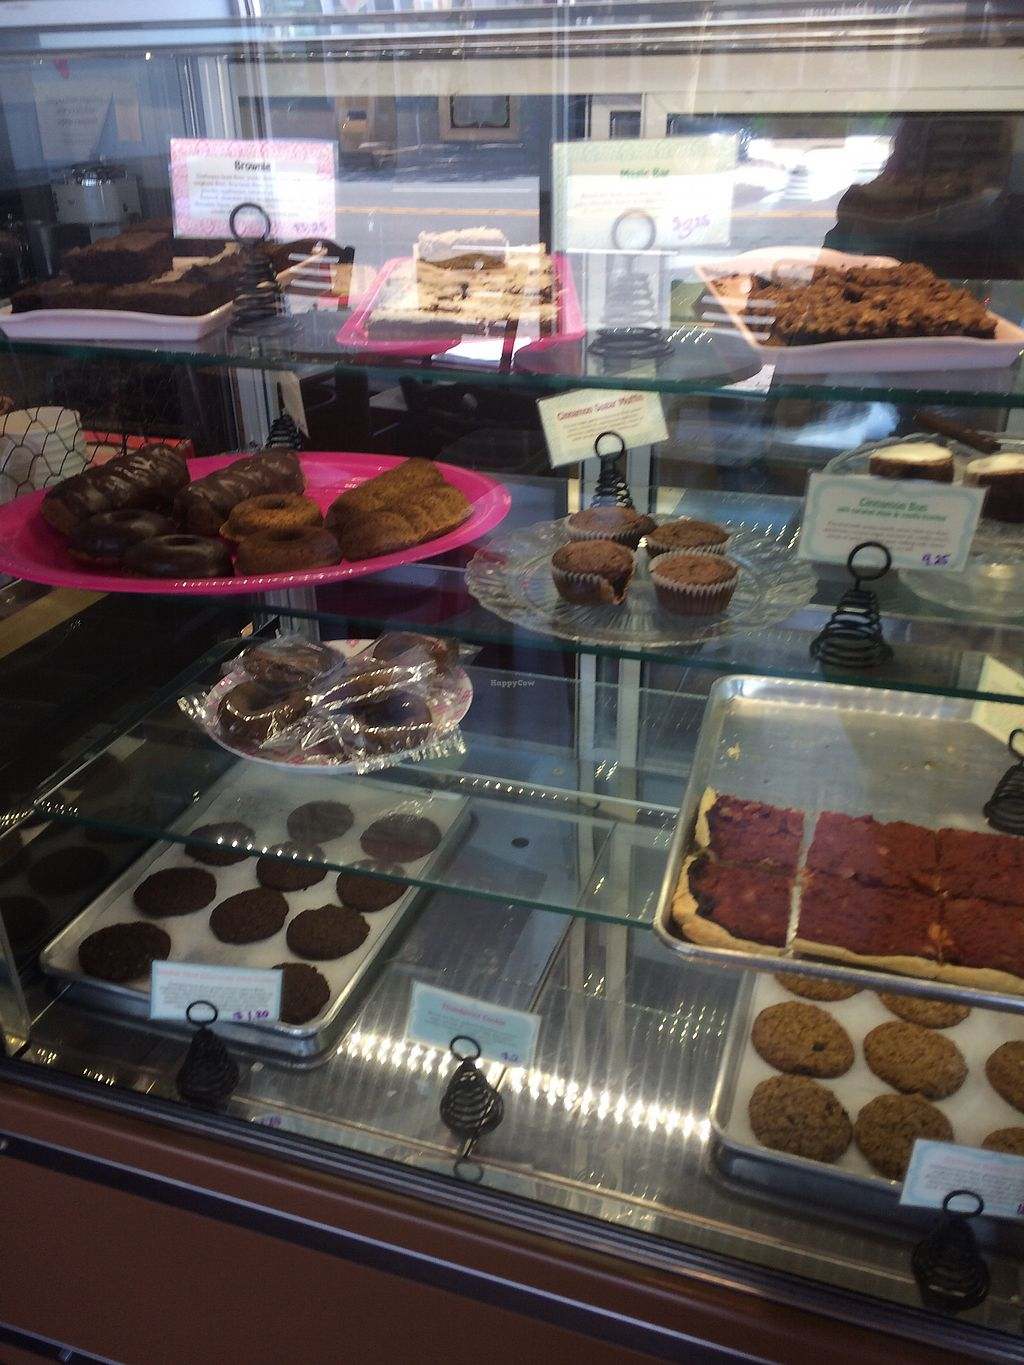 """Photo of Sweet Freedom Bakery  by <a href=""""/members/profile/cassienat"""">cassienat</a> <br/>case  <br/> August 25, 2017  - <a href='/contact/abuse/image/85627/296990'>Report</a>"""